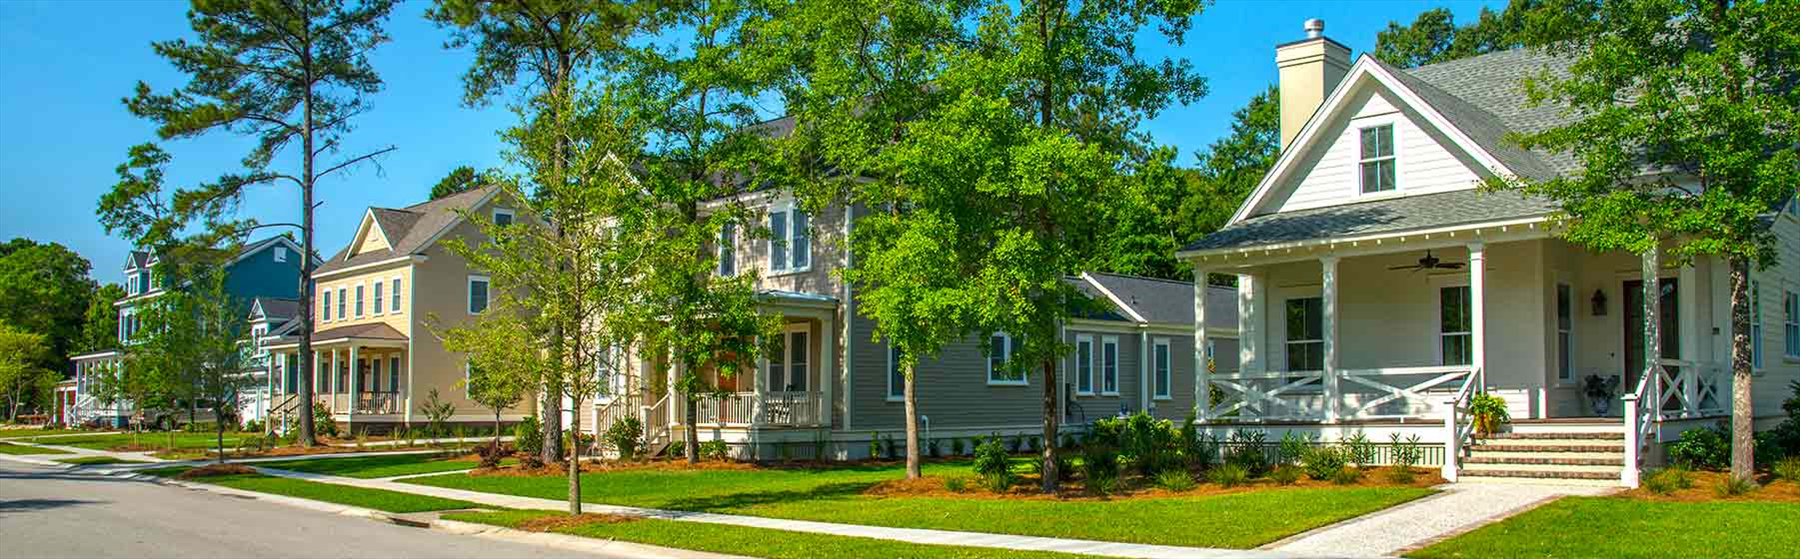 Carolina Park Custom Homes | Mount Pleasant SC